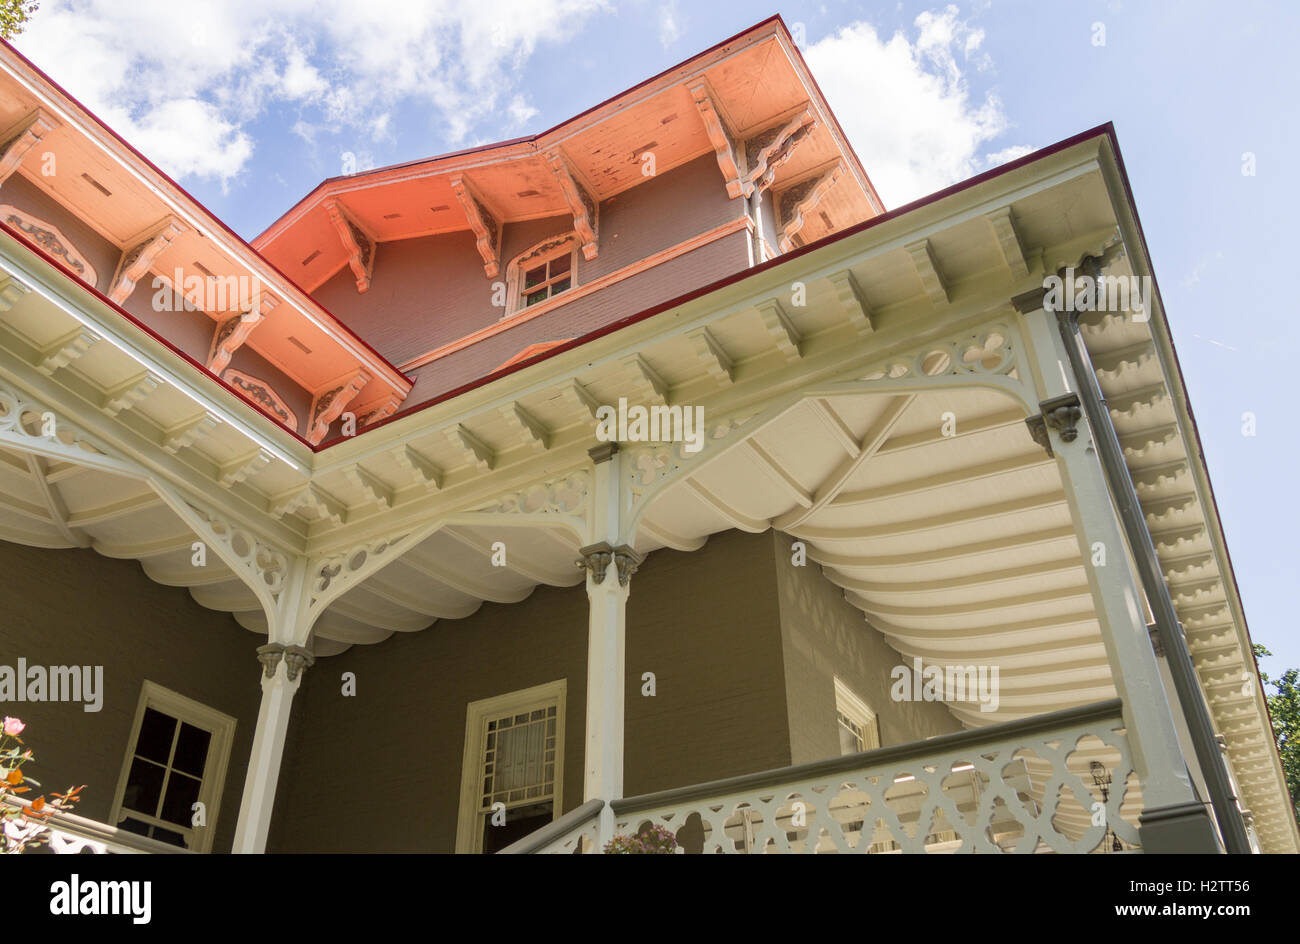 Veranda of the Asa Packer Mansion. The detailed woodwork of the eves and veranda roof of this venerable house in - Stock Image